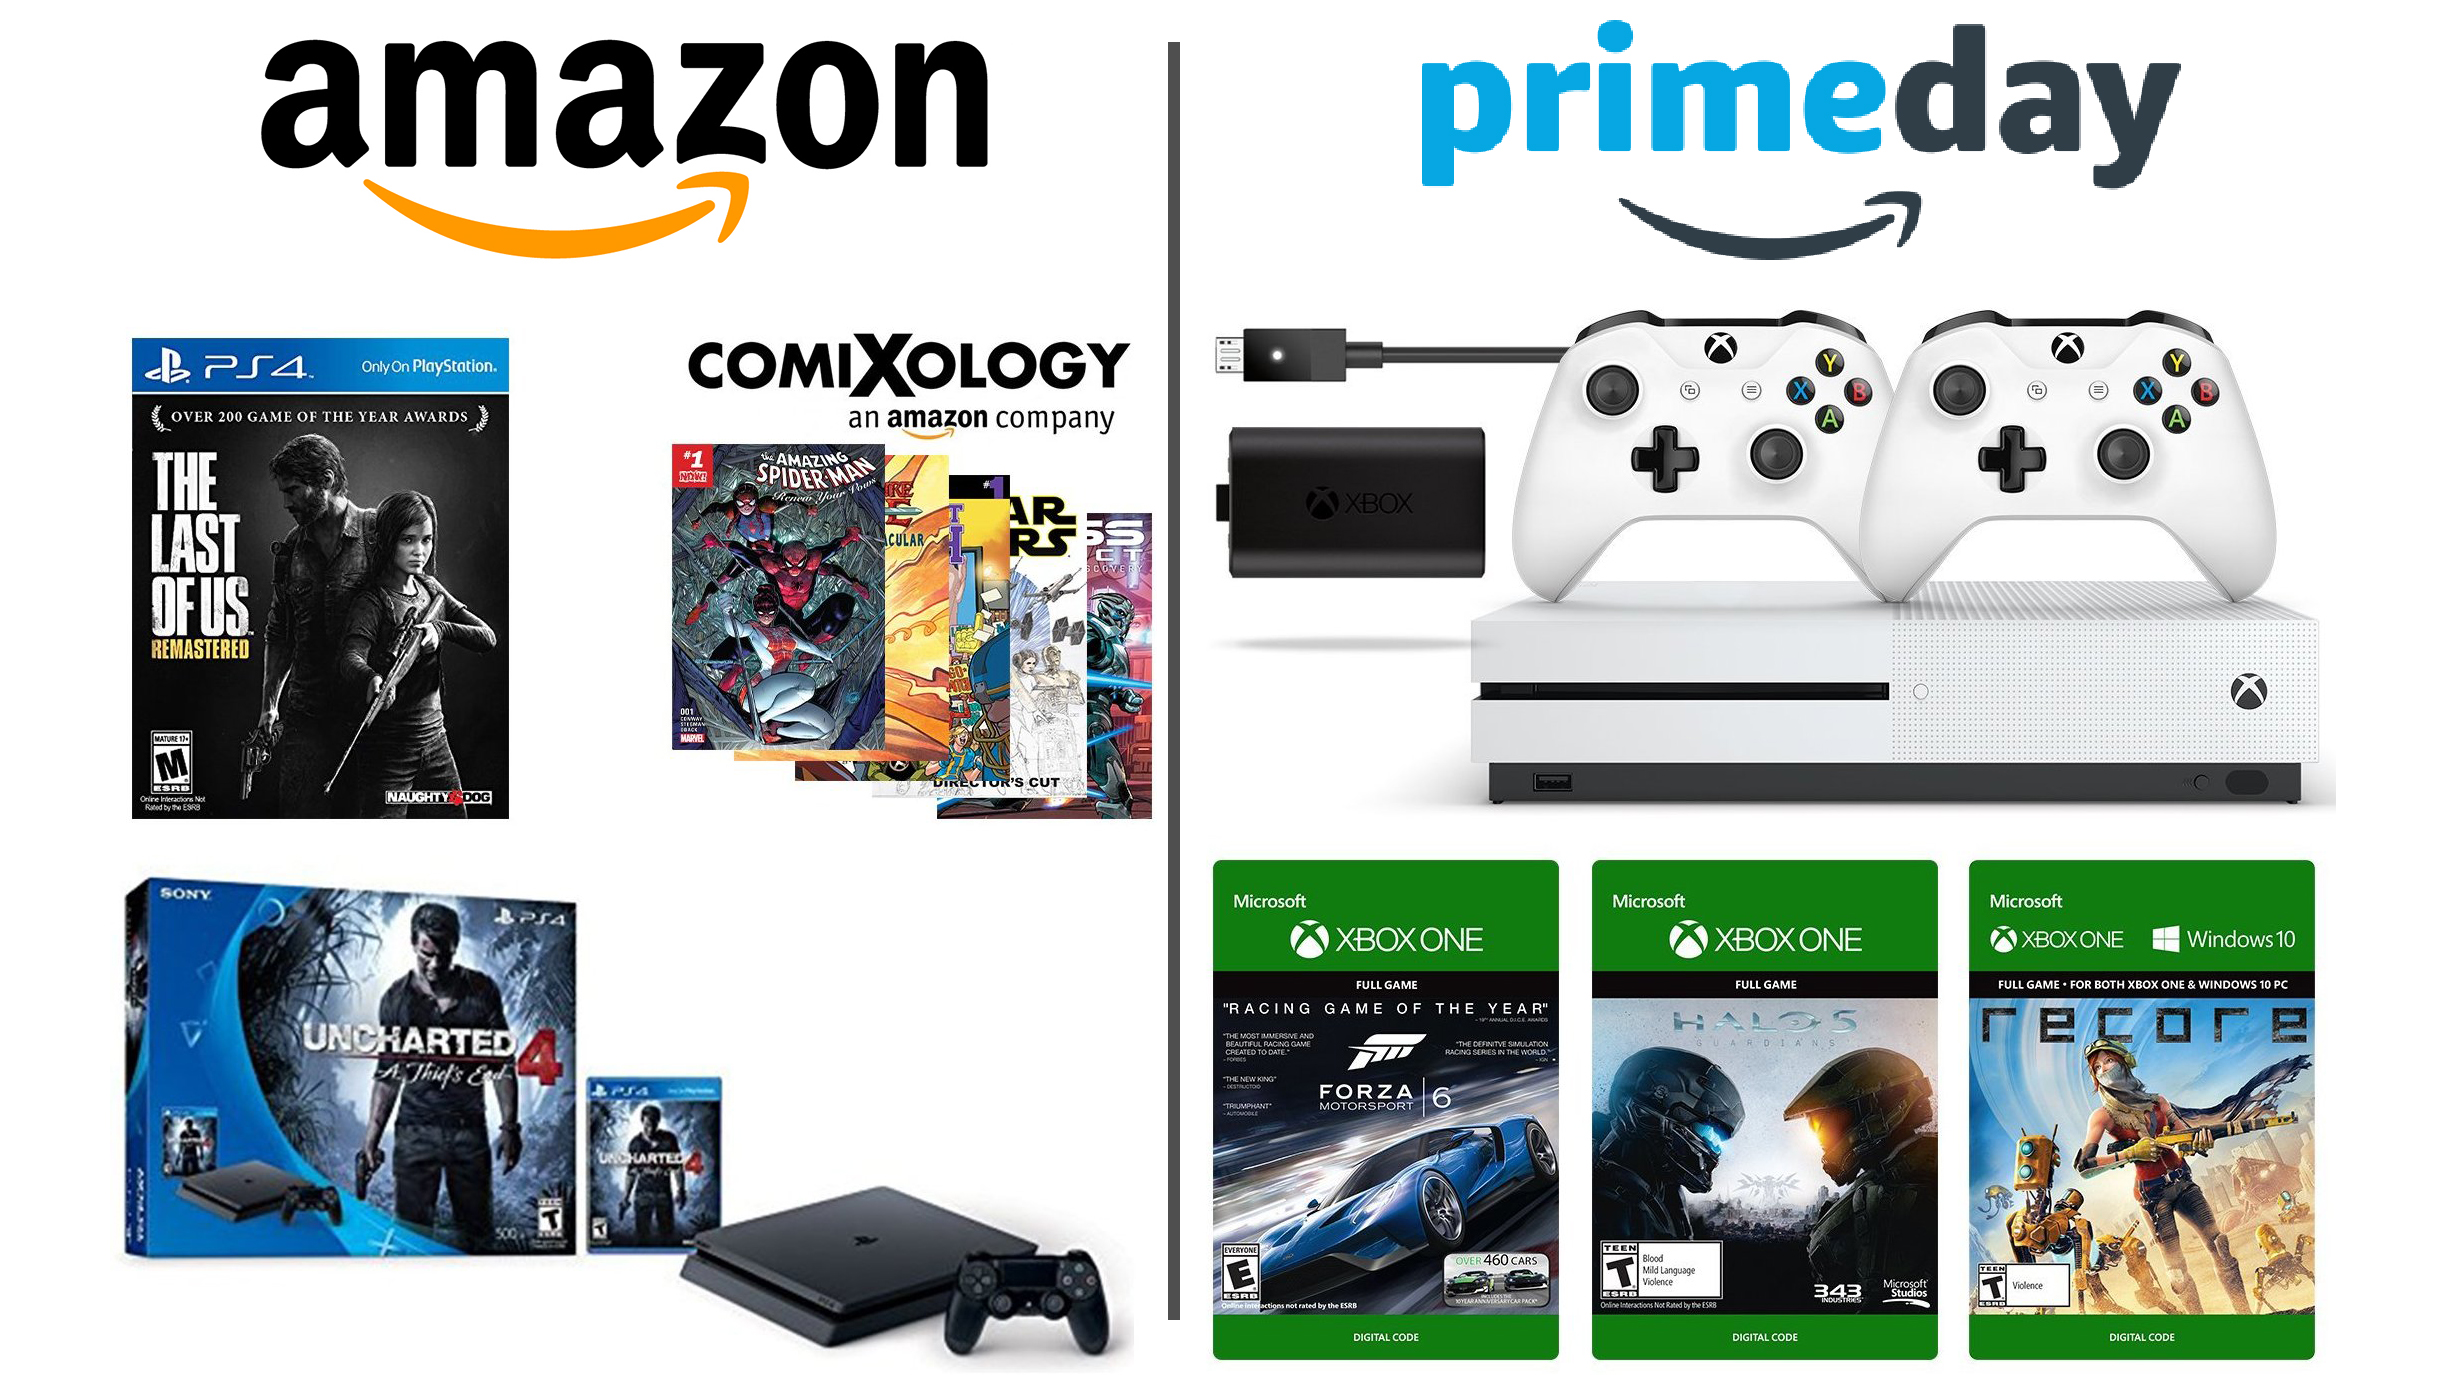 Amazon Prime Day 2017 deals list: see what is still on sale